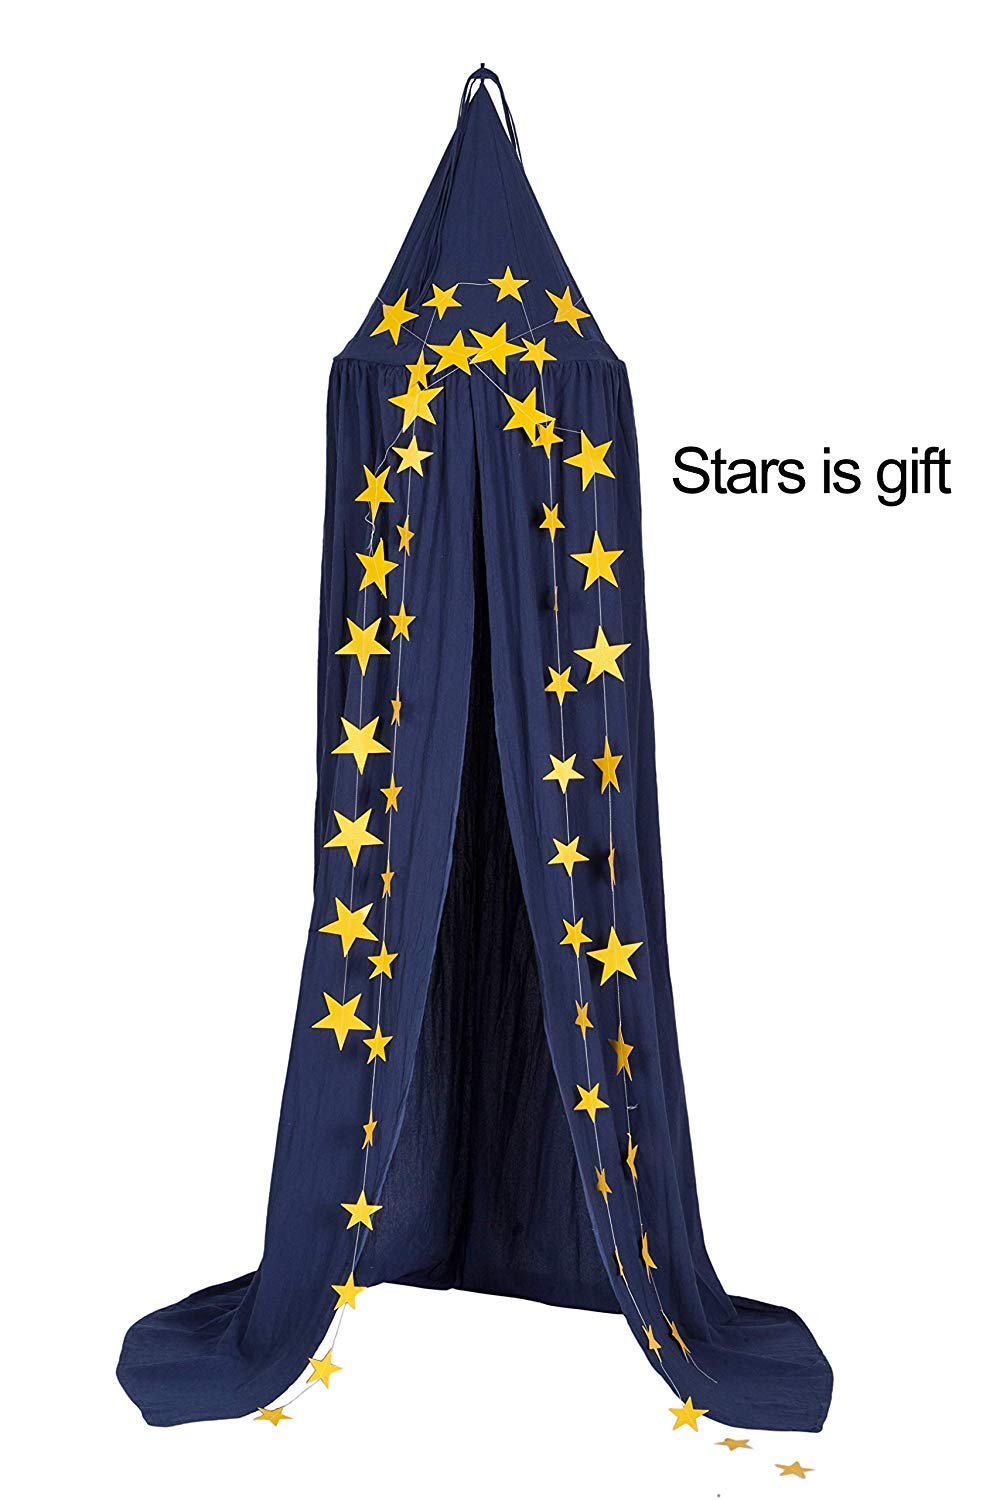 Dix-Rainbow Princess Bed Canopy Mosquito Net for Kids Baby Bed, Round Dome Kids Indoor Outdoor Castle Play Tent Hanging House Decoration Reading Nook Cotton Midnight Blue